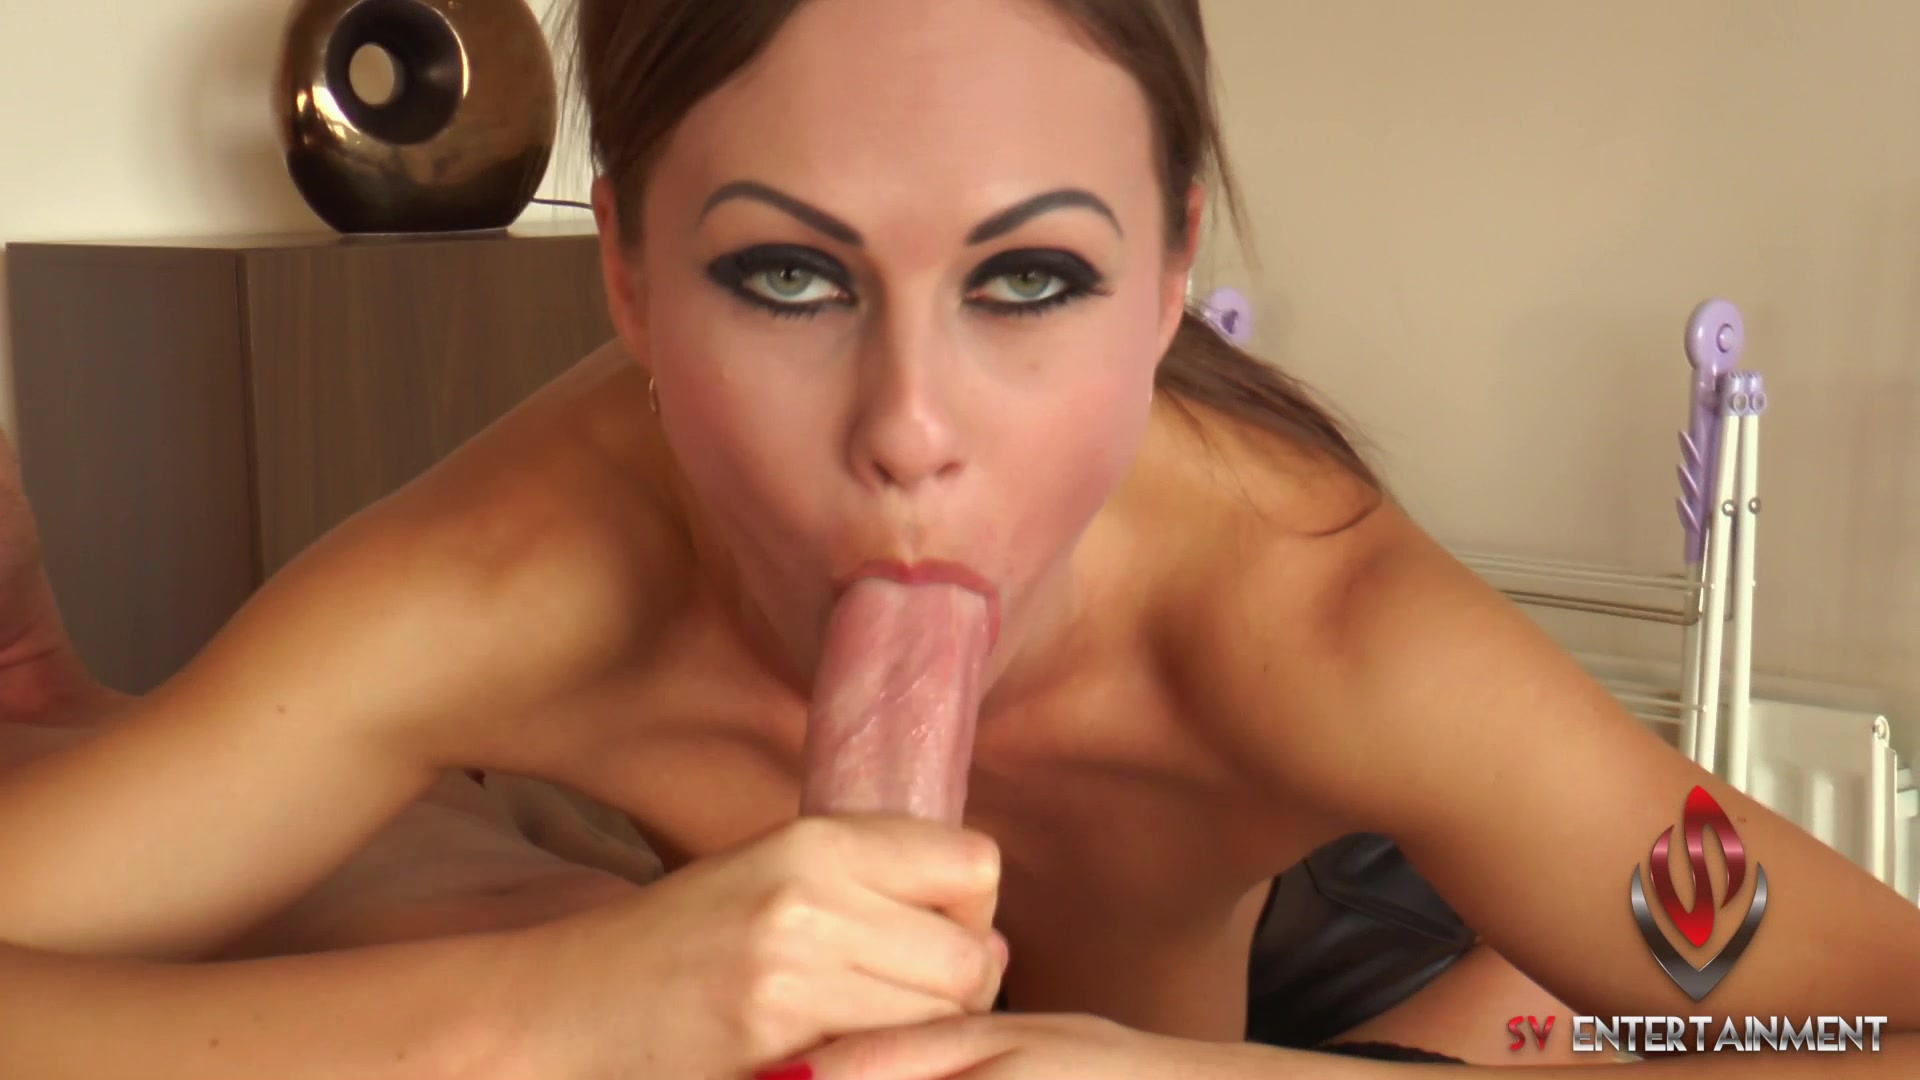 Female sucking cock instrutions